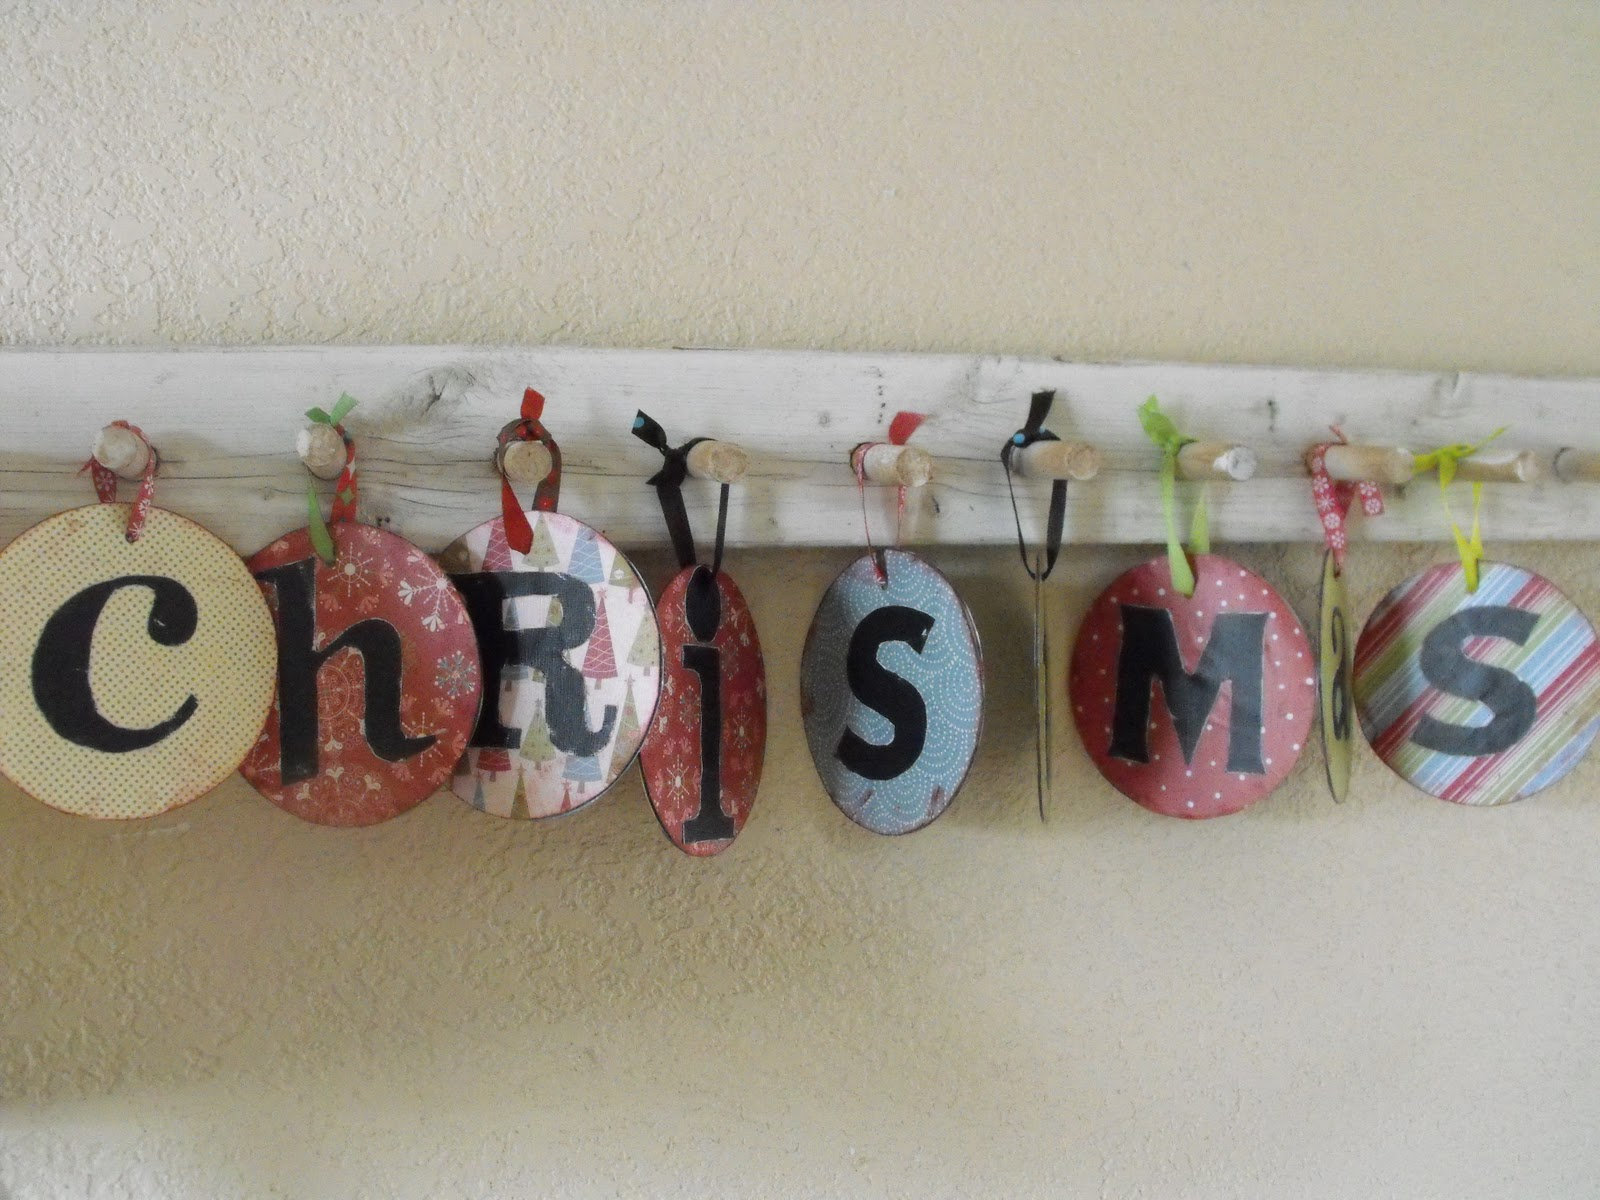 Christmas Wall Decor Recycled : Christmas decorations made with recycled materials